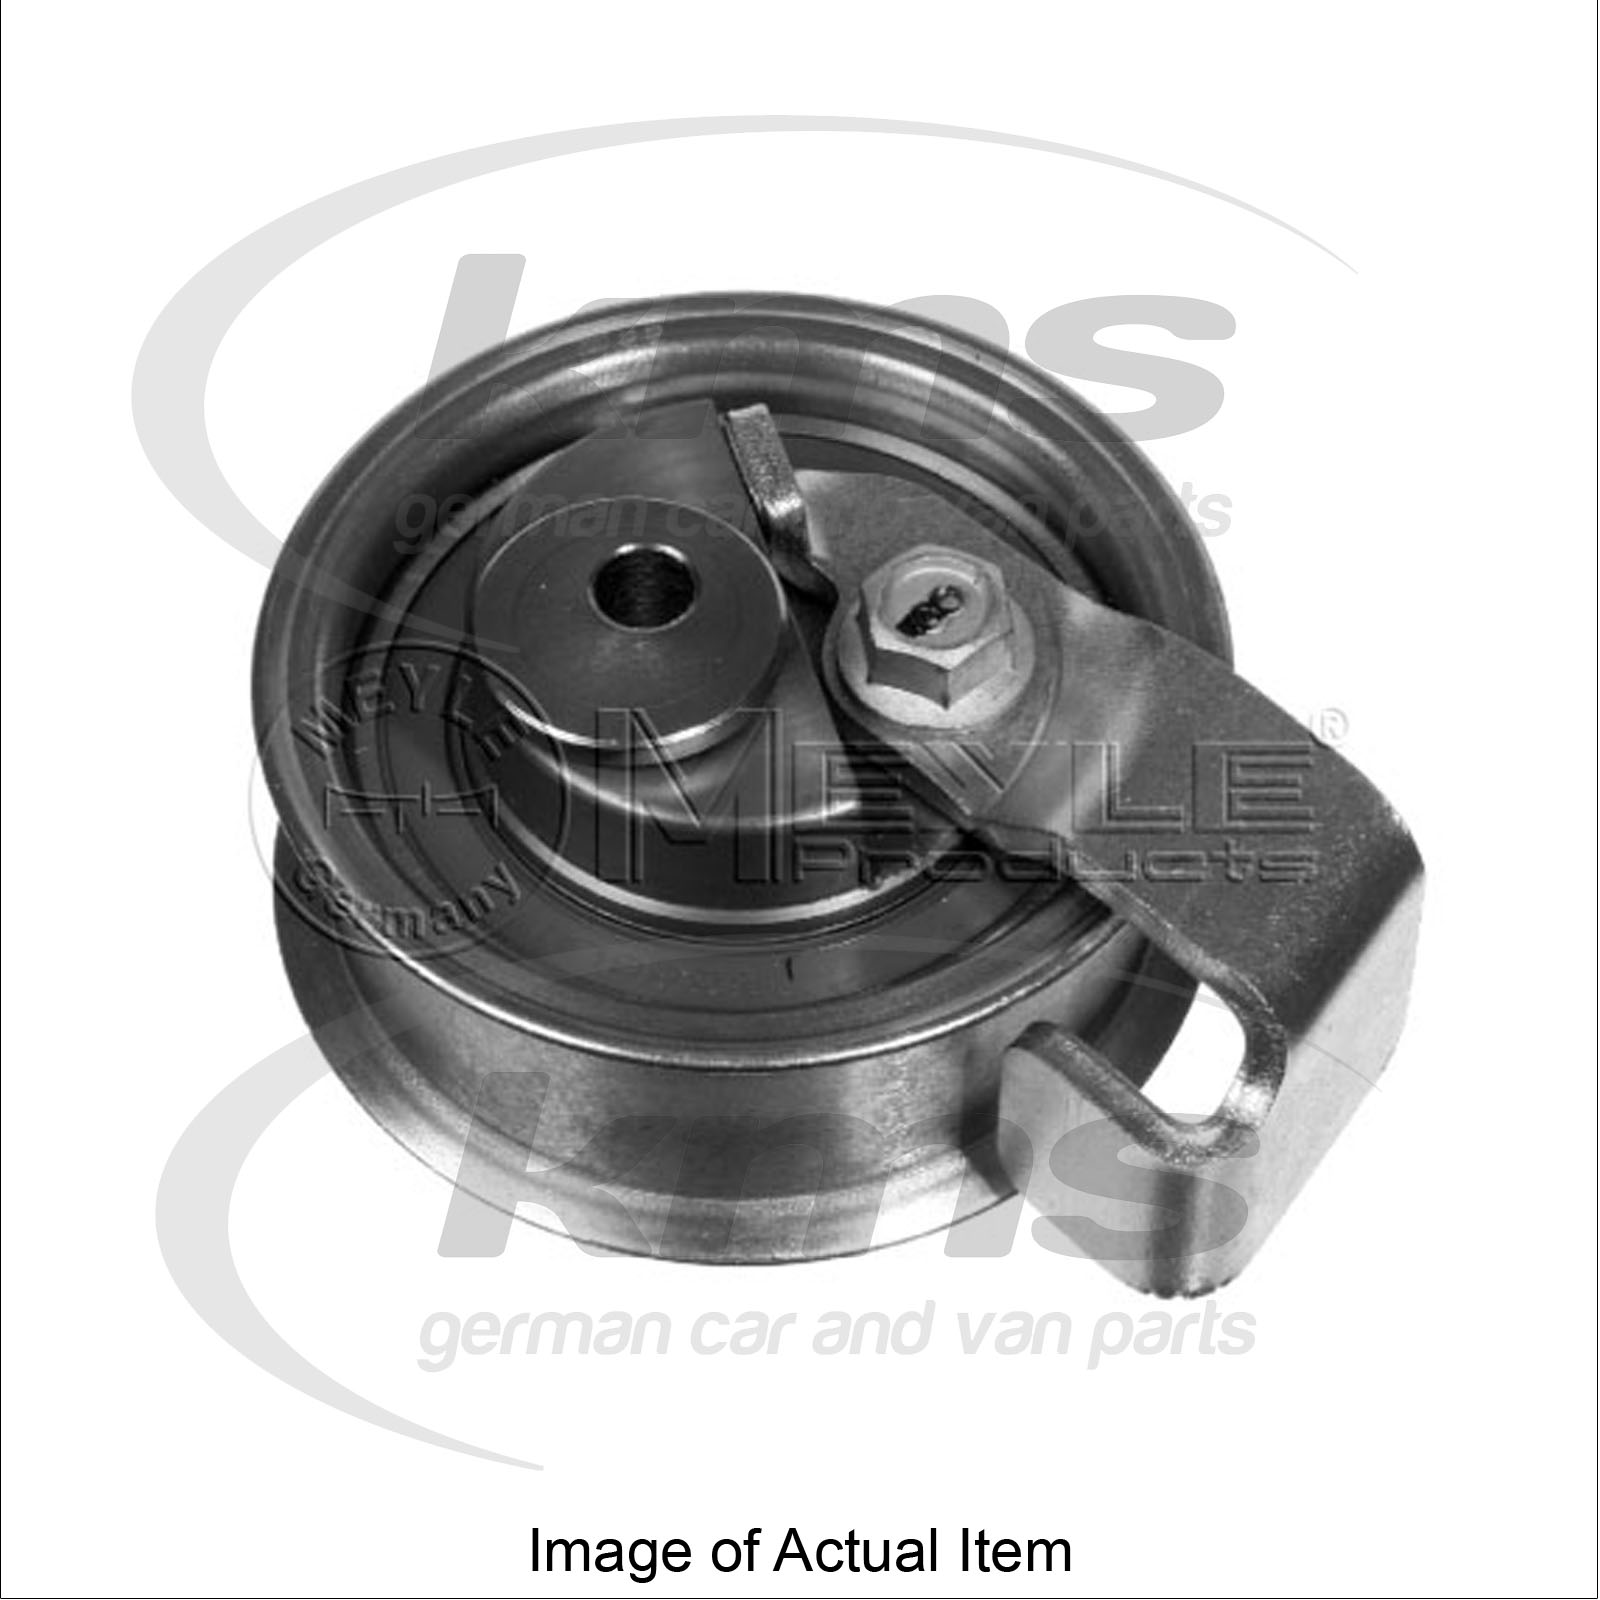 Tensioner pulley for timing belt skoda superb u t